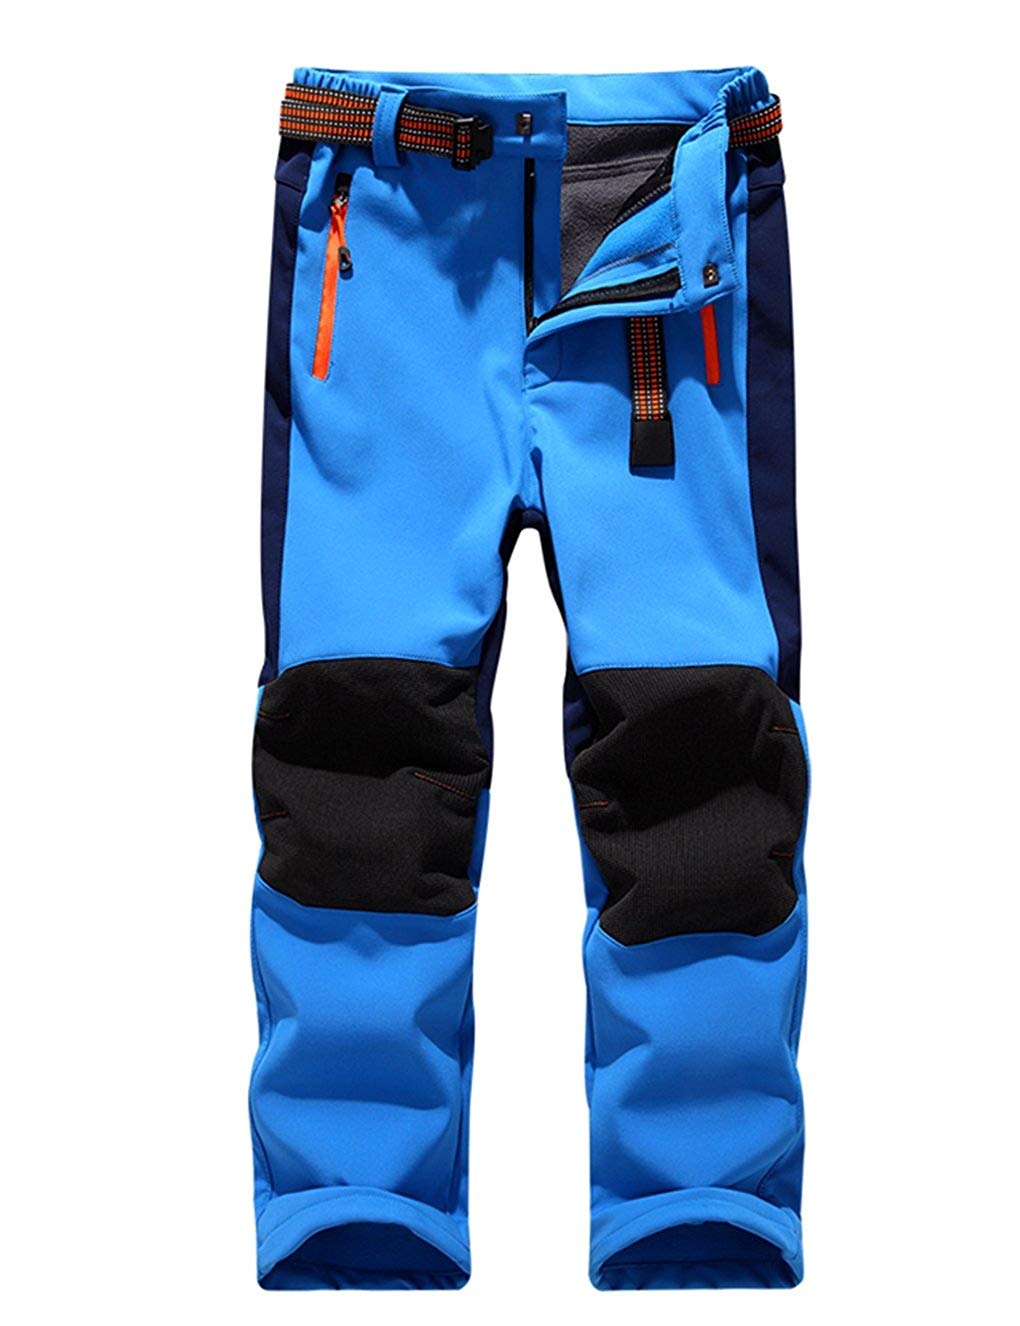 Childrens Heavyweight Snowsuit Pant Water Resistant Insulated Ski Snow Pants